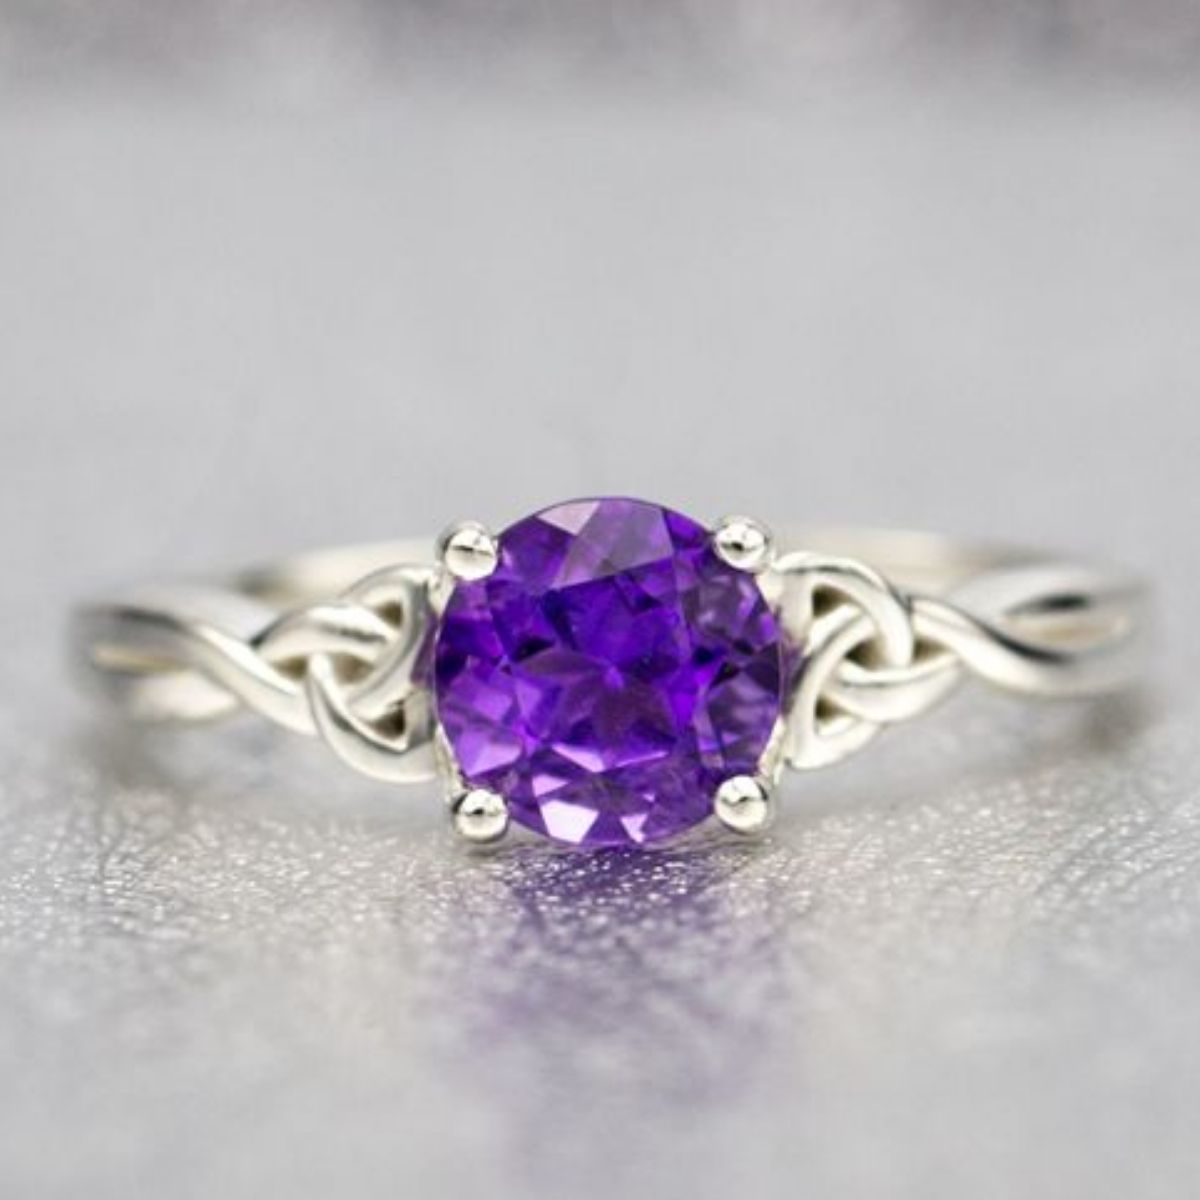 diamond white oval amethyst lance james purple engagement ring gold rings image